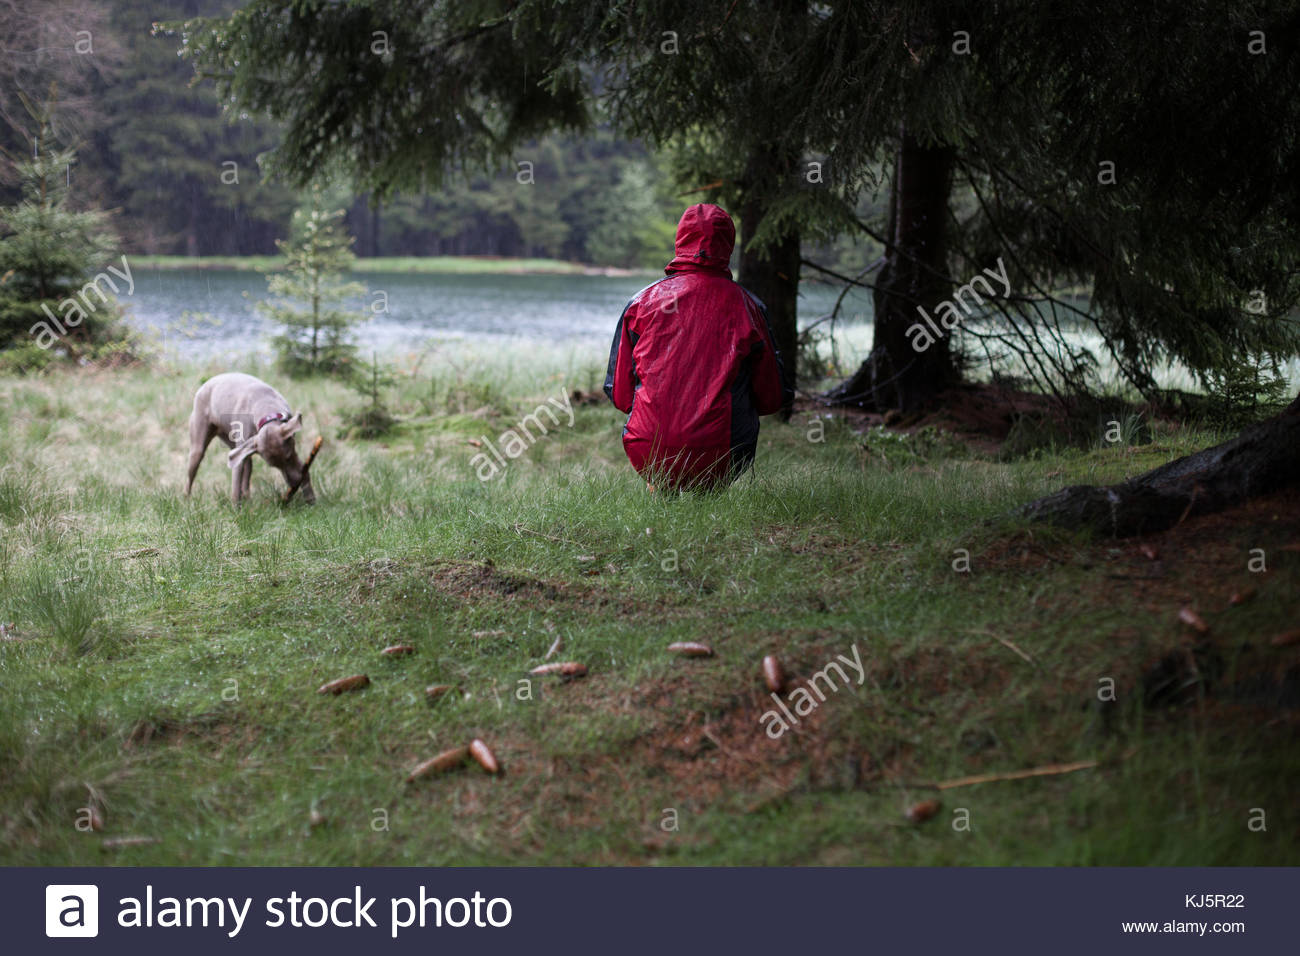 woman in anorak jumping by water - Stock Image